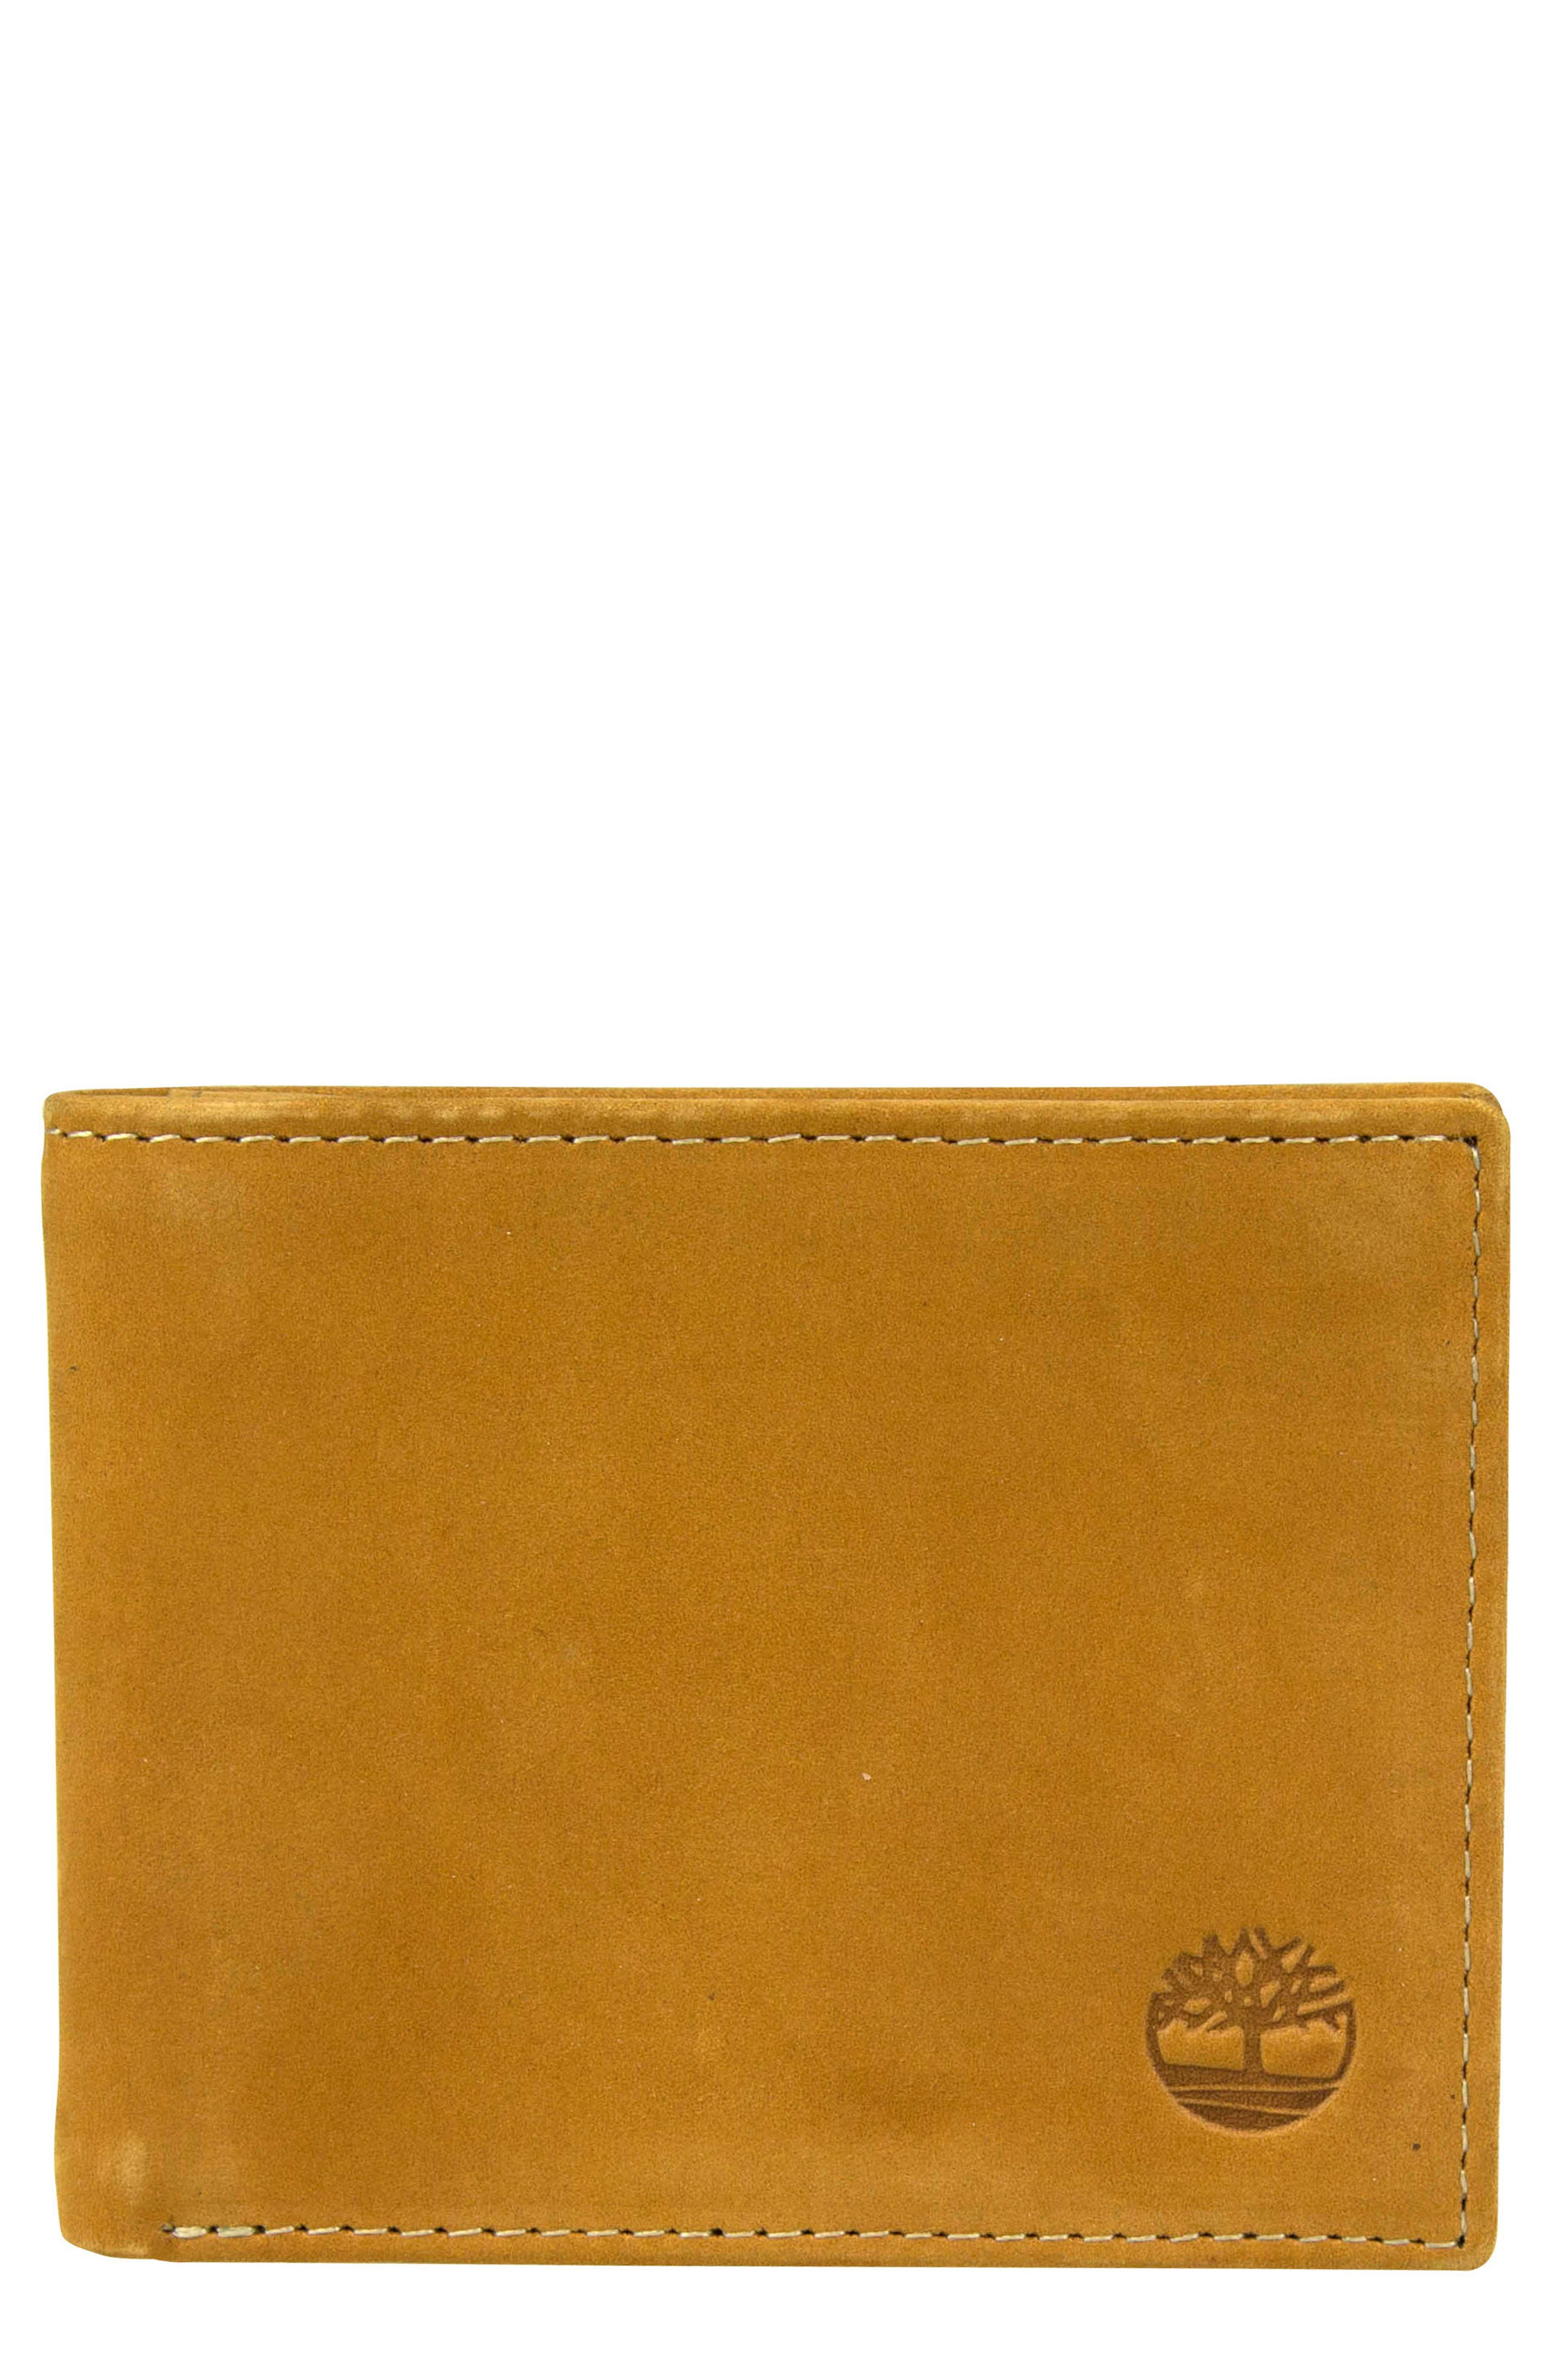 Icon Leather Wallet,                             Main thumbnail 1, color,                             WHEAT